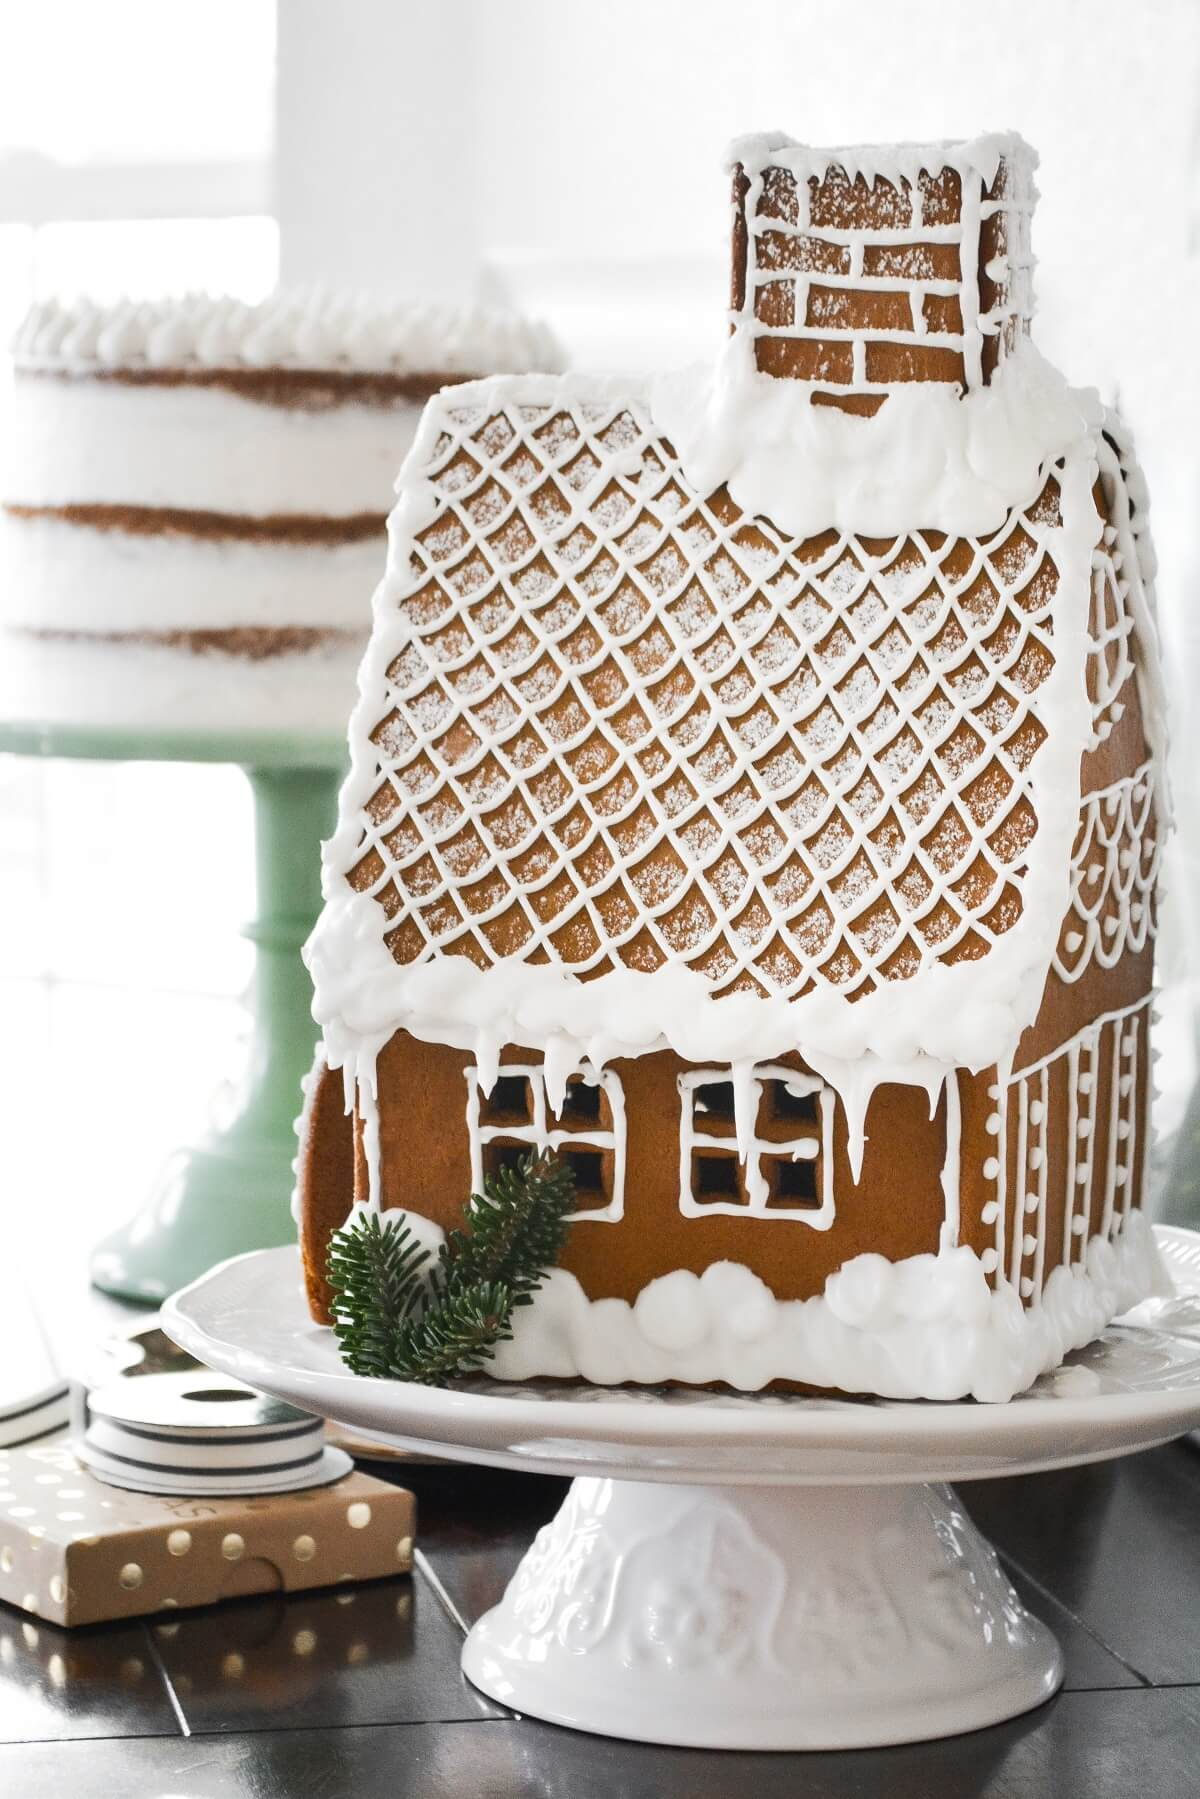 A gingerbread house with a cake in the background.